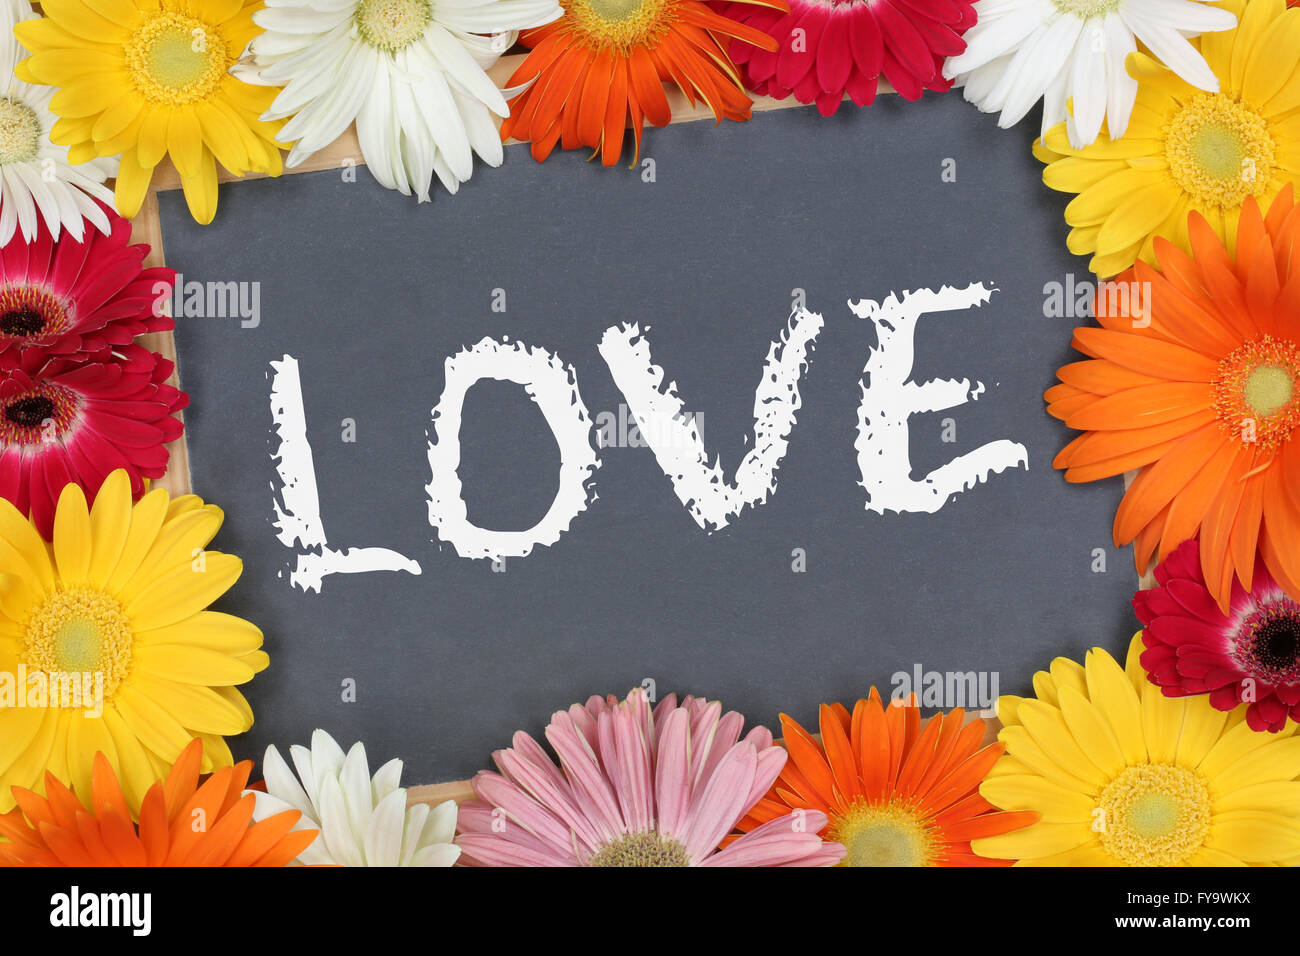 Love loving greeting card garden with colorful flowers flower board sign - Stock Image